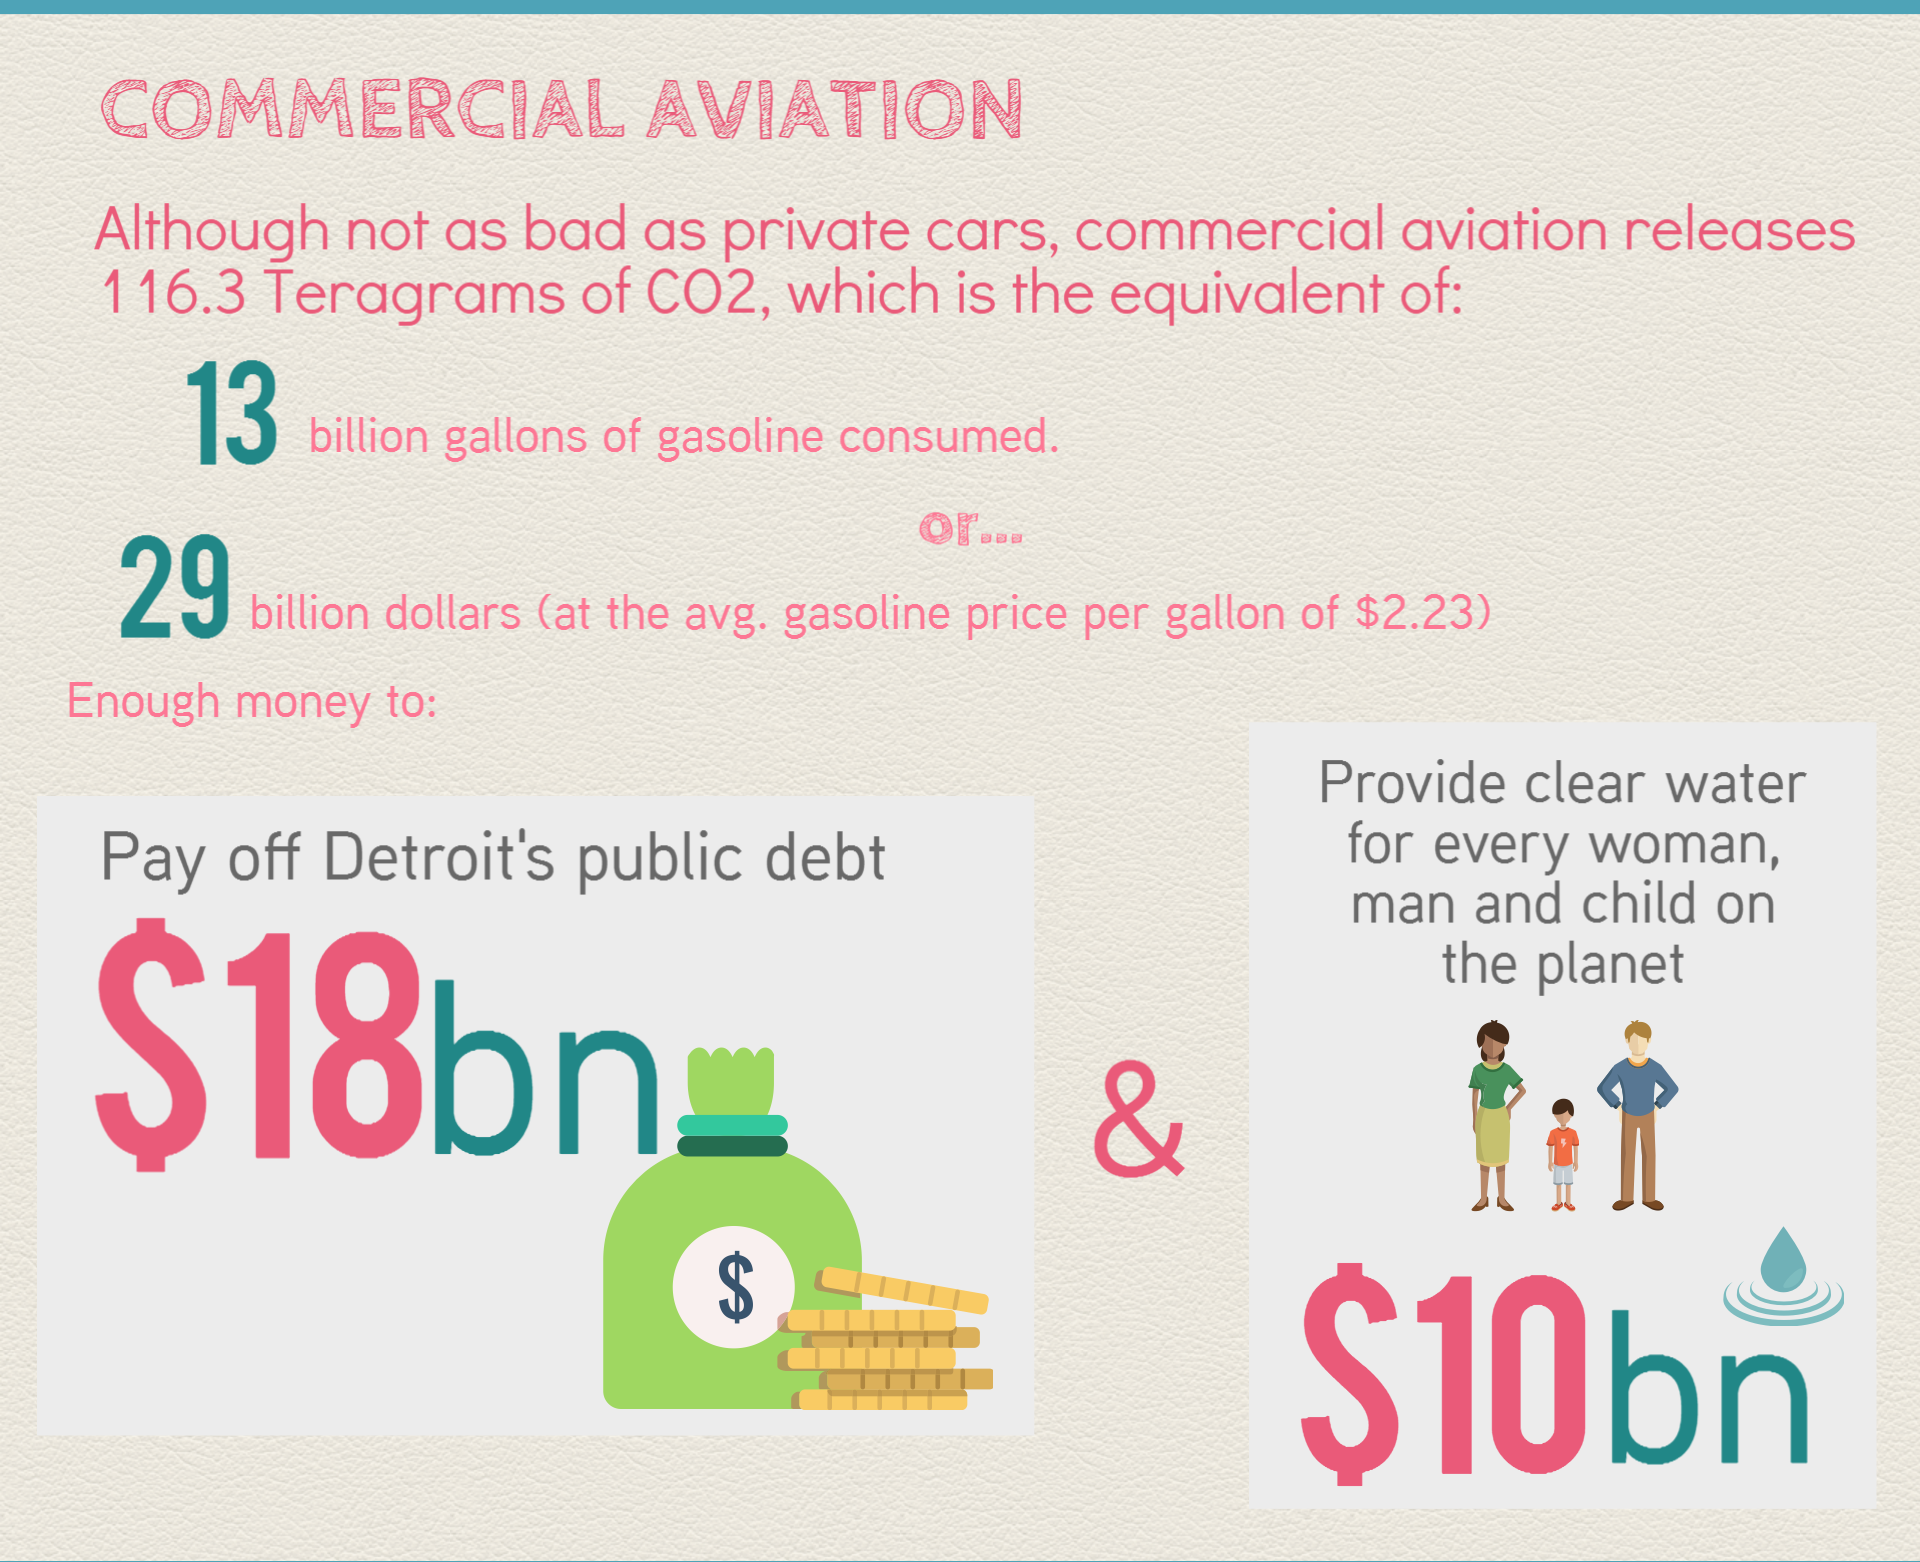 CO2 from commercial aviation